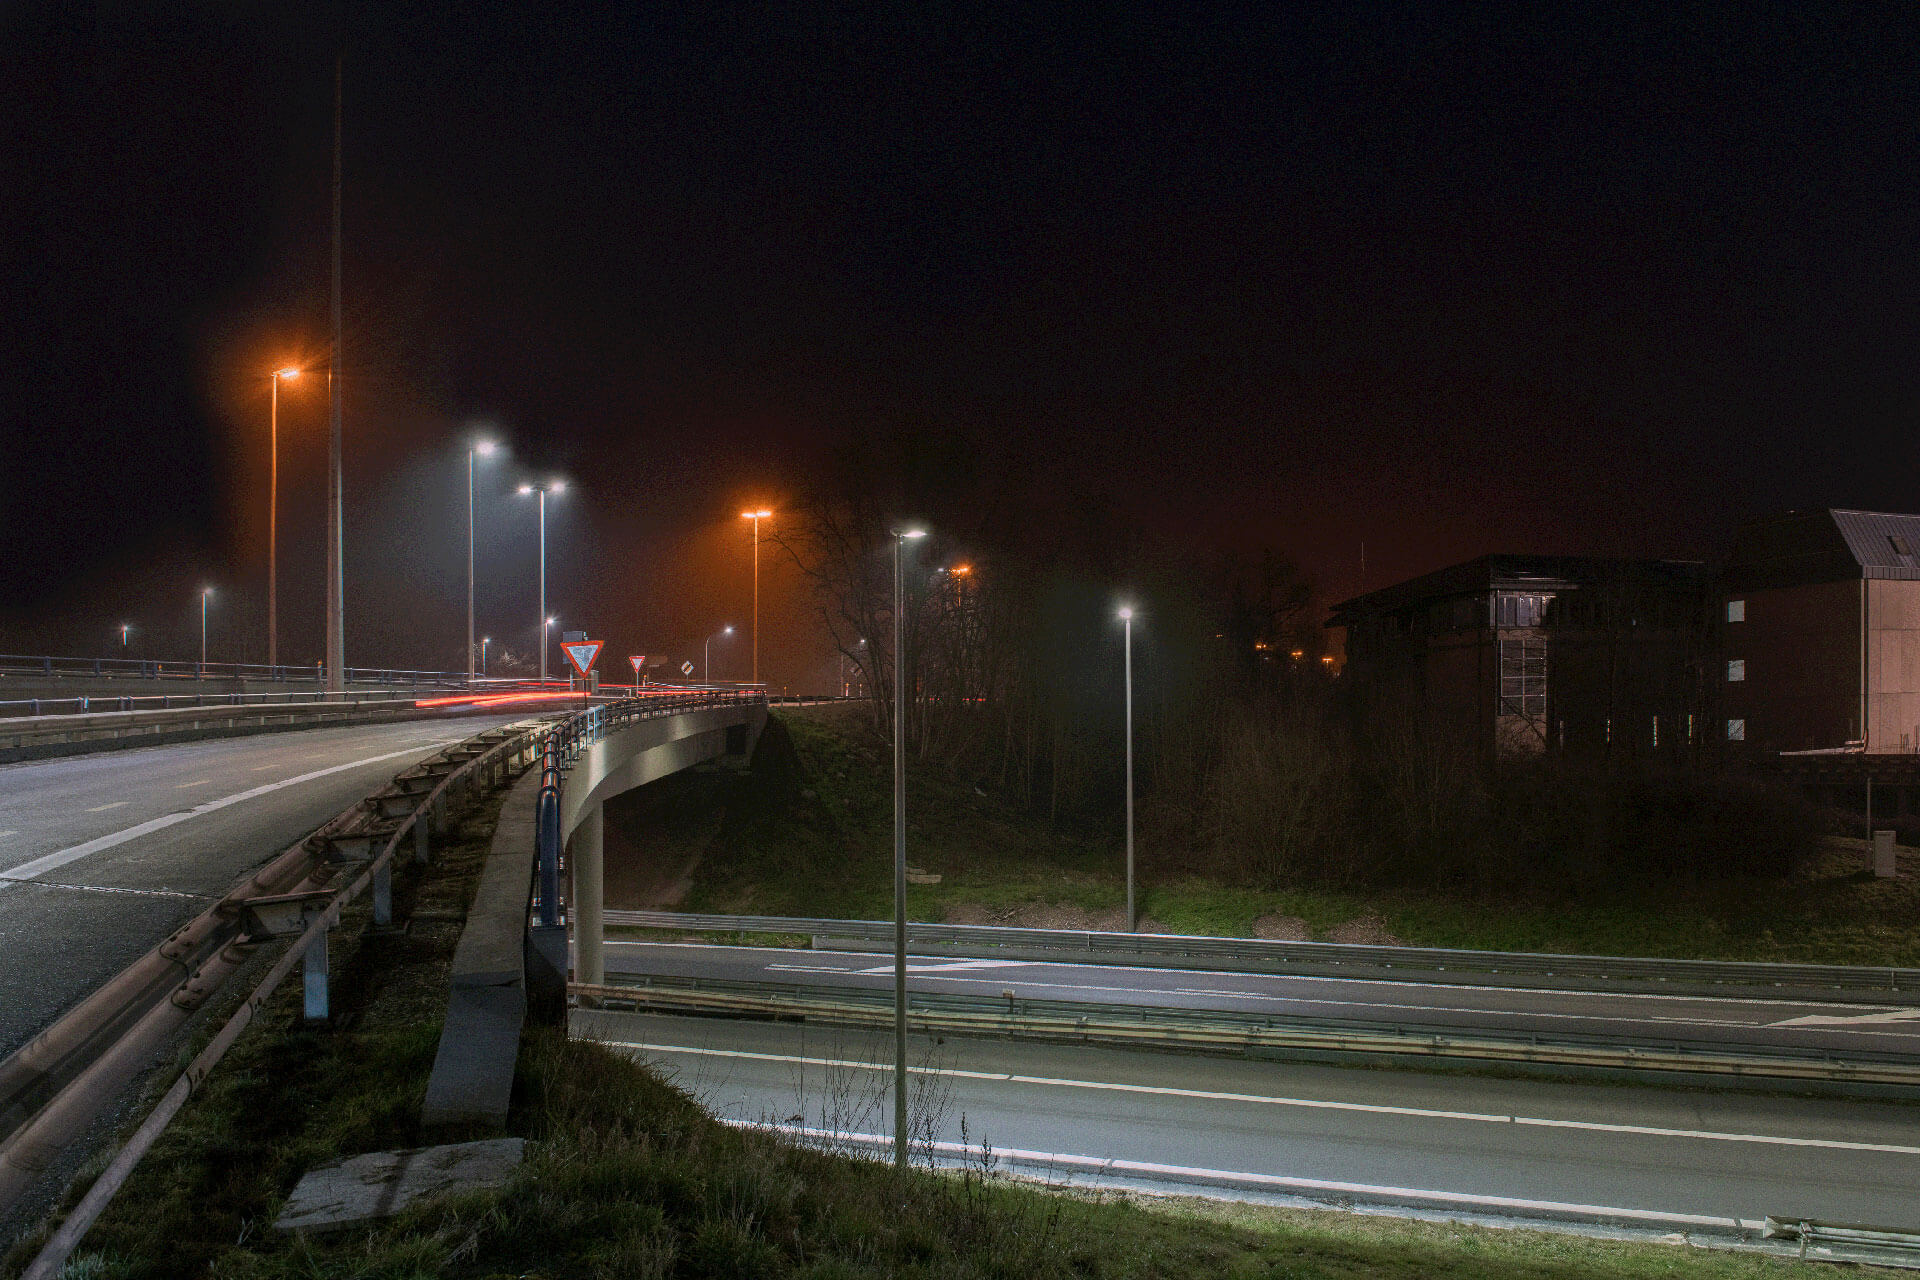 Lighting upgrade with Ampera enables the number of luminaires to be reduced from 450 to 340